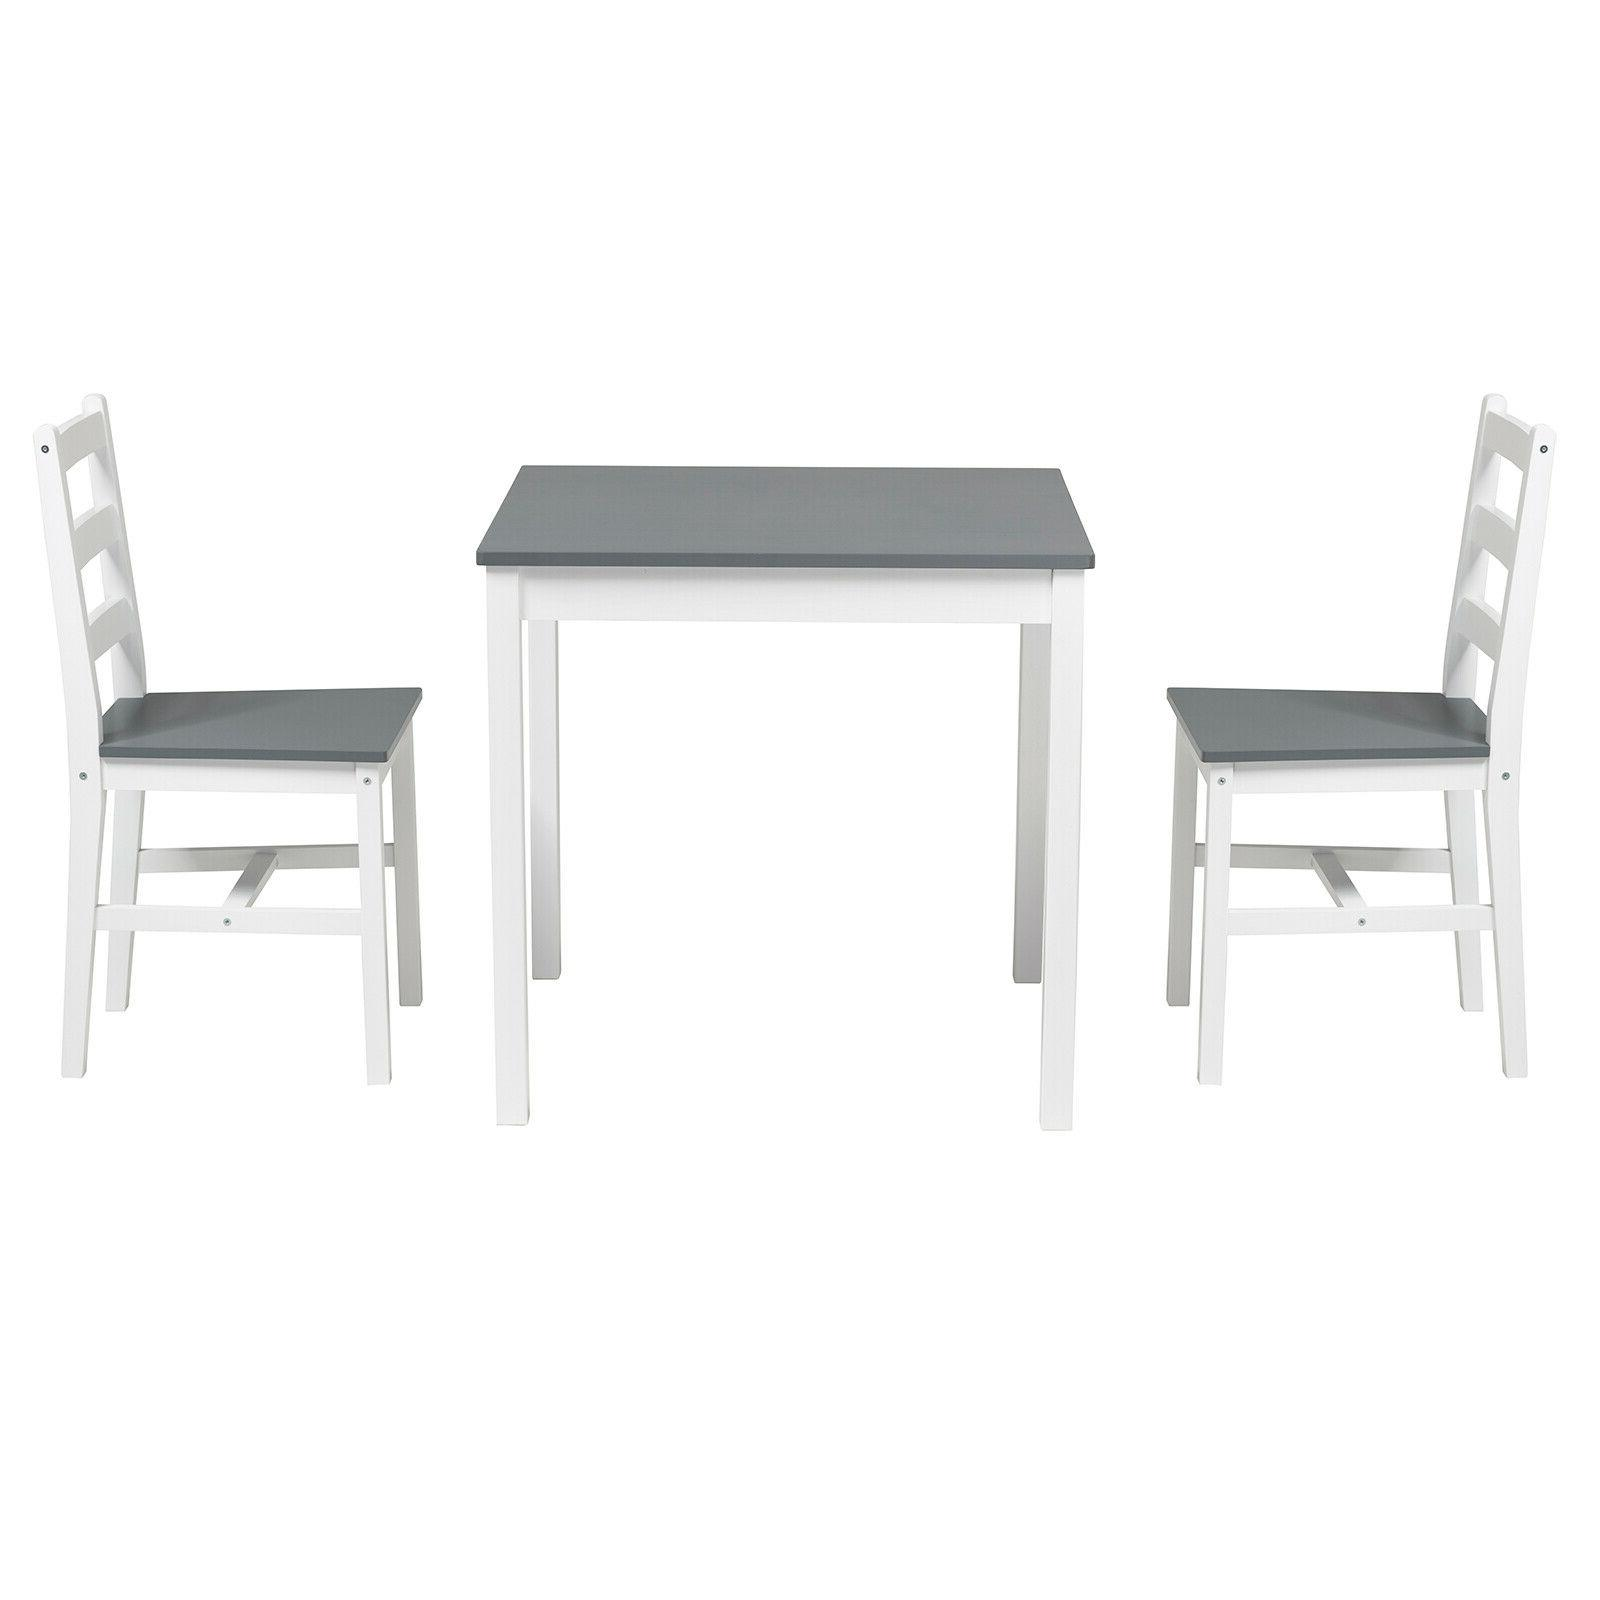 3PCS Dining Table 2 Dining Room Furniture Wood Grey